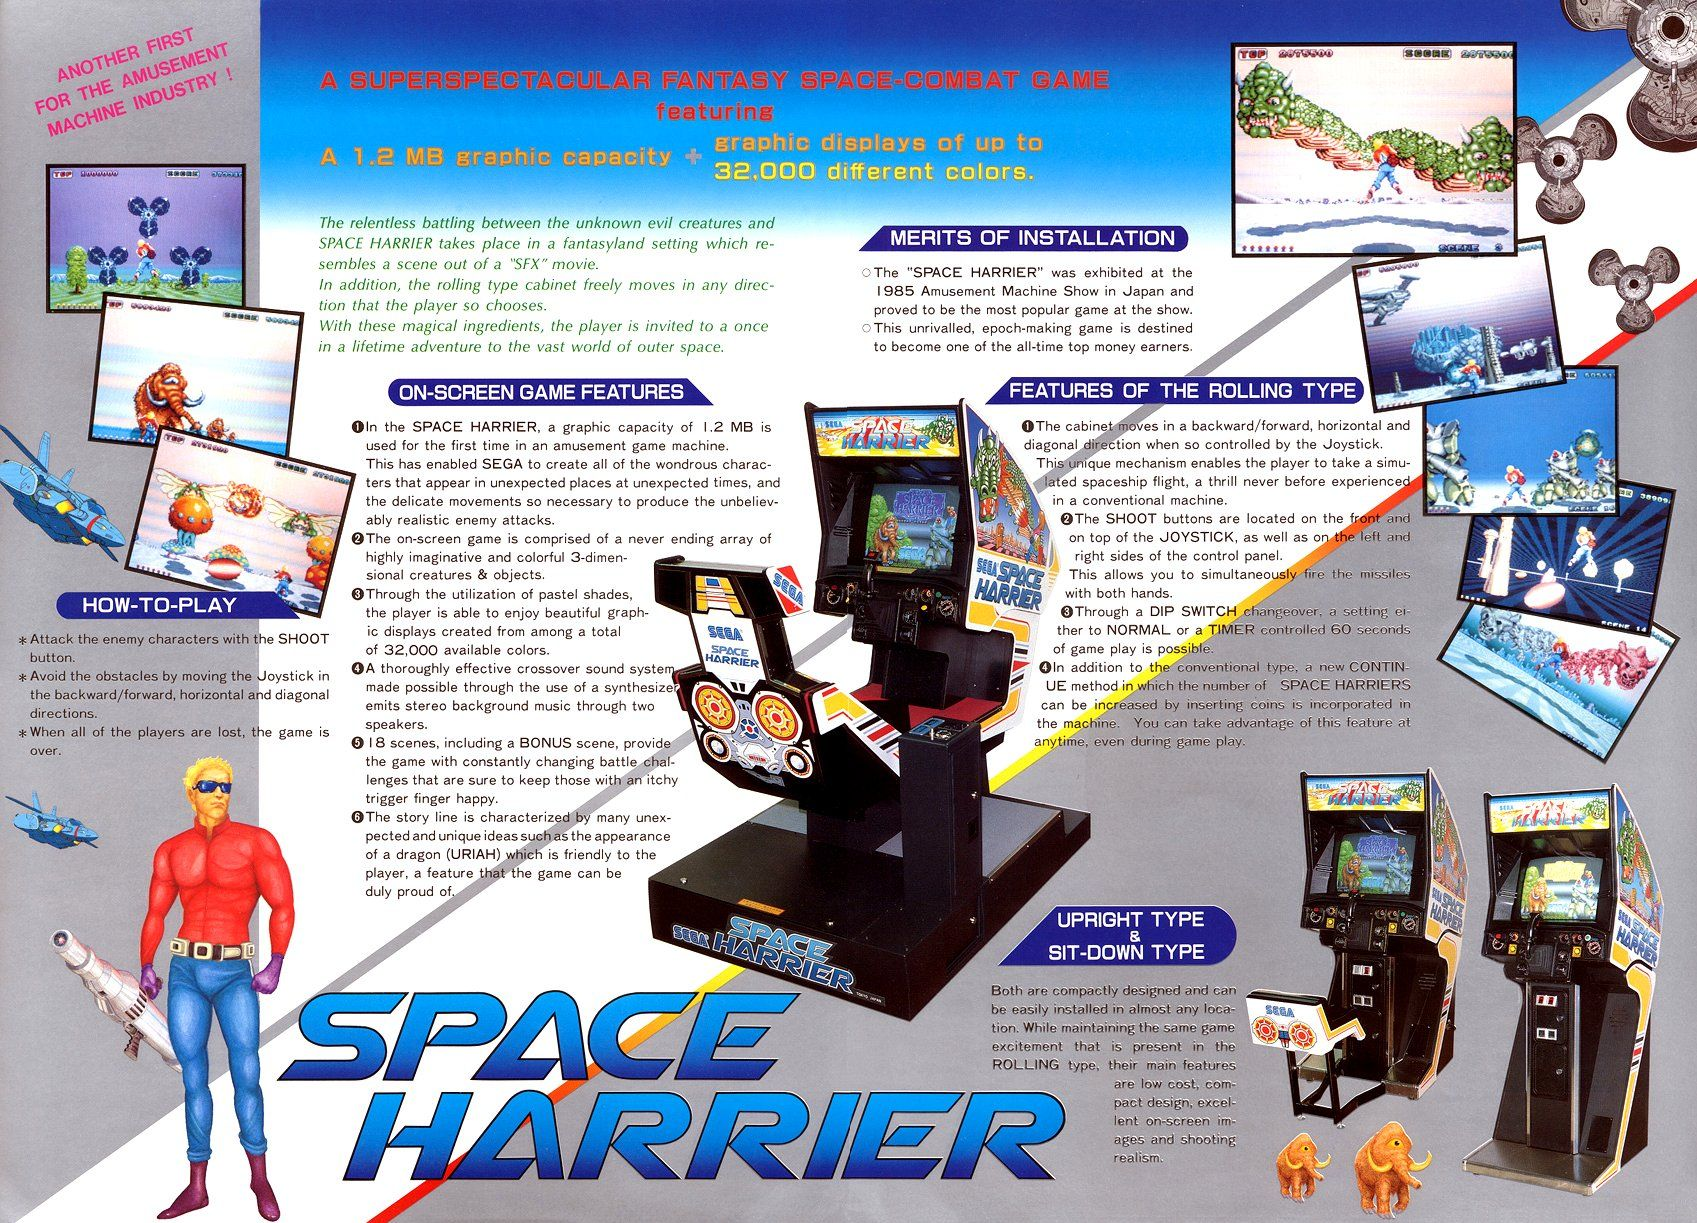 space harrier arcade cabinet - Google Search | Video Games ...